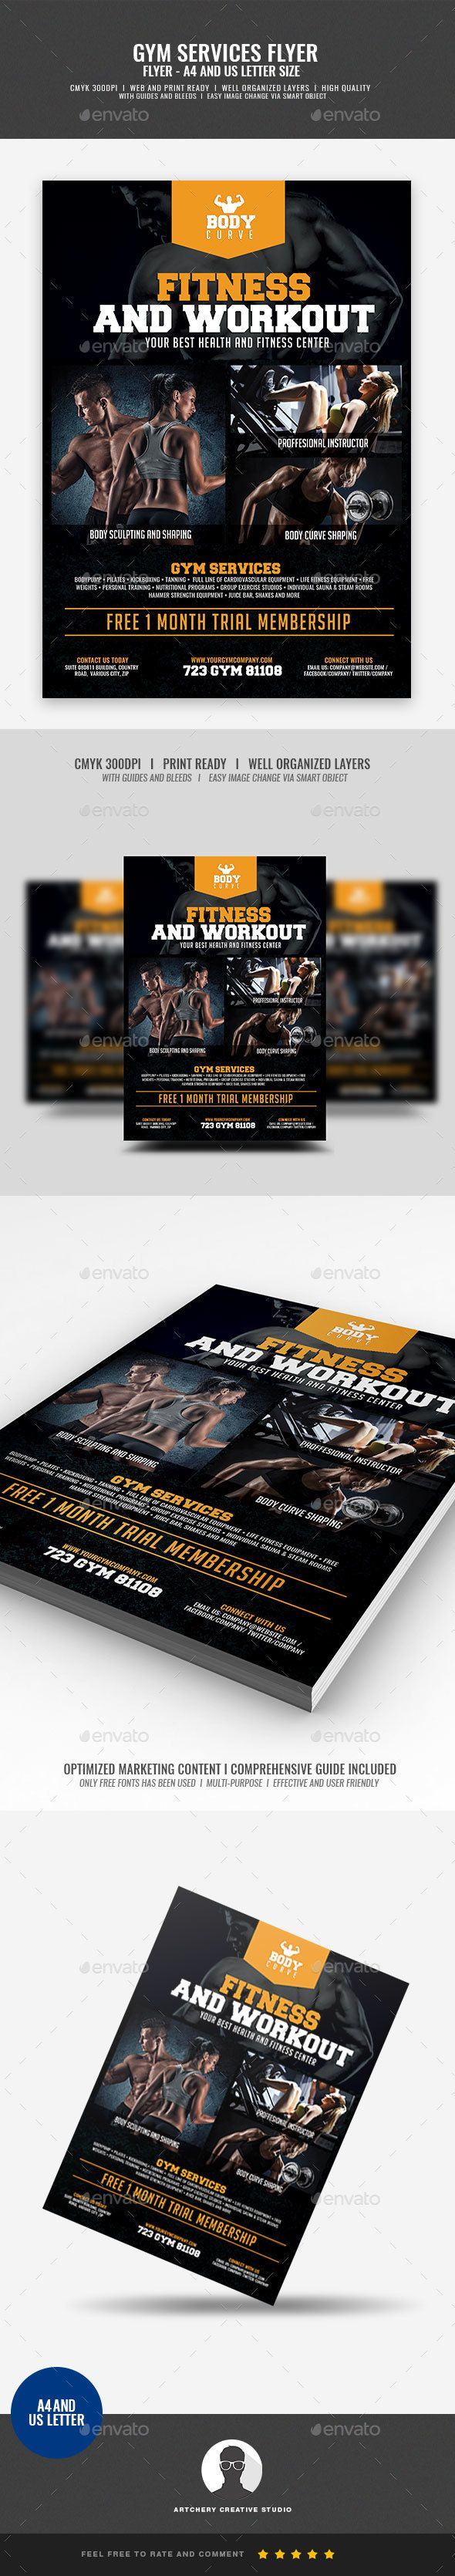 Fitness Gym Center Flyer Design Template Boost your company¡¯s sales and attract new customers! This Fitness Gym Center Flyer Design Template have been developed to boost your Ultimate Marketing strategy and brand/product awareness, Perfect for large and small